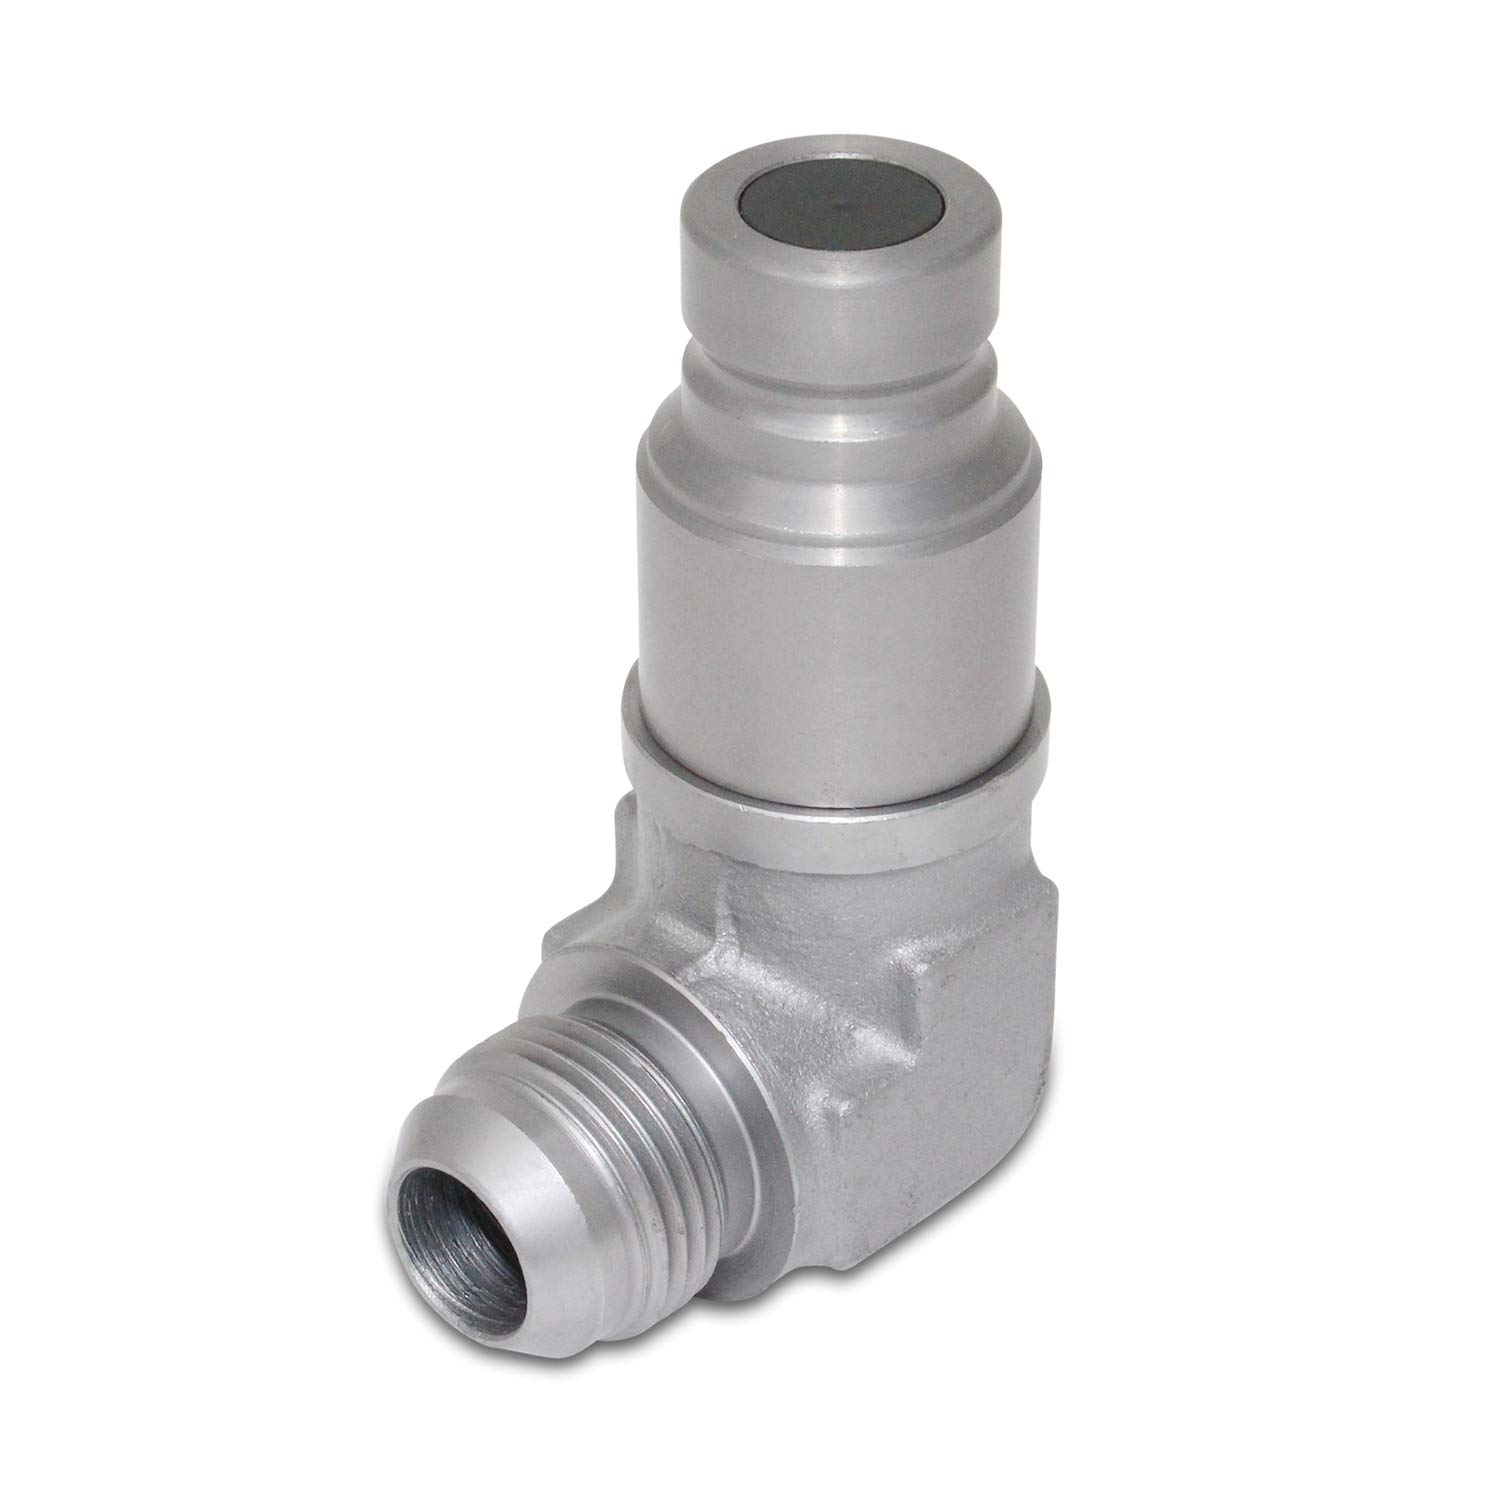 Bobcat 7246795 Replacement Hydraulic Male Flat Face Quick Coupler